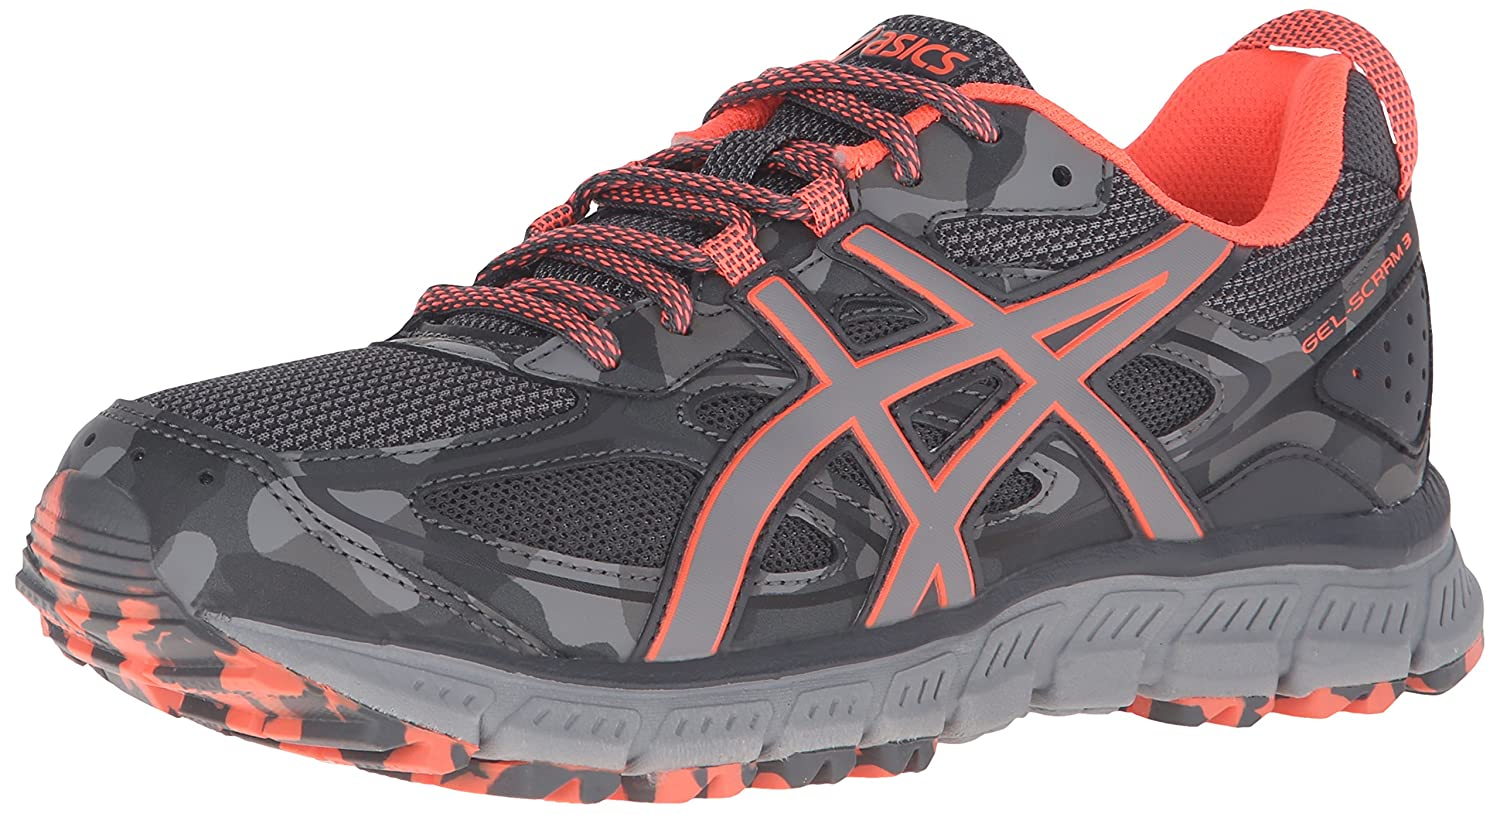 ASICS Women s Gel-Scram 3 Trail Runner Steel Grey/Flash Coral/Aluminum 8  B(M) US: Amazon.in: Shoes & Handbags